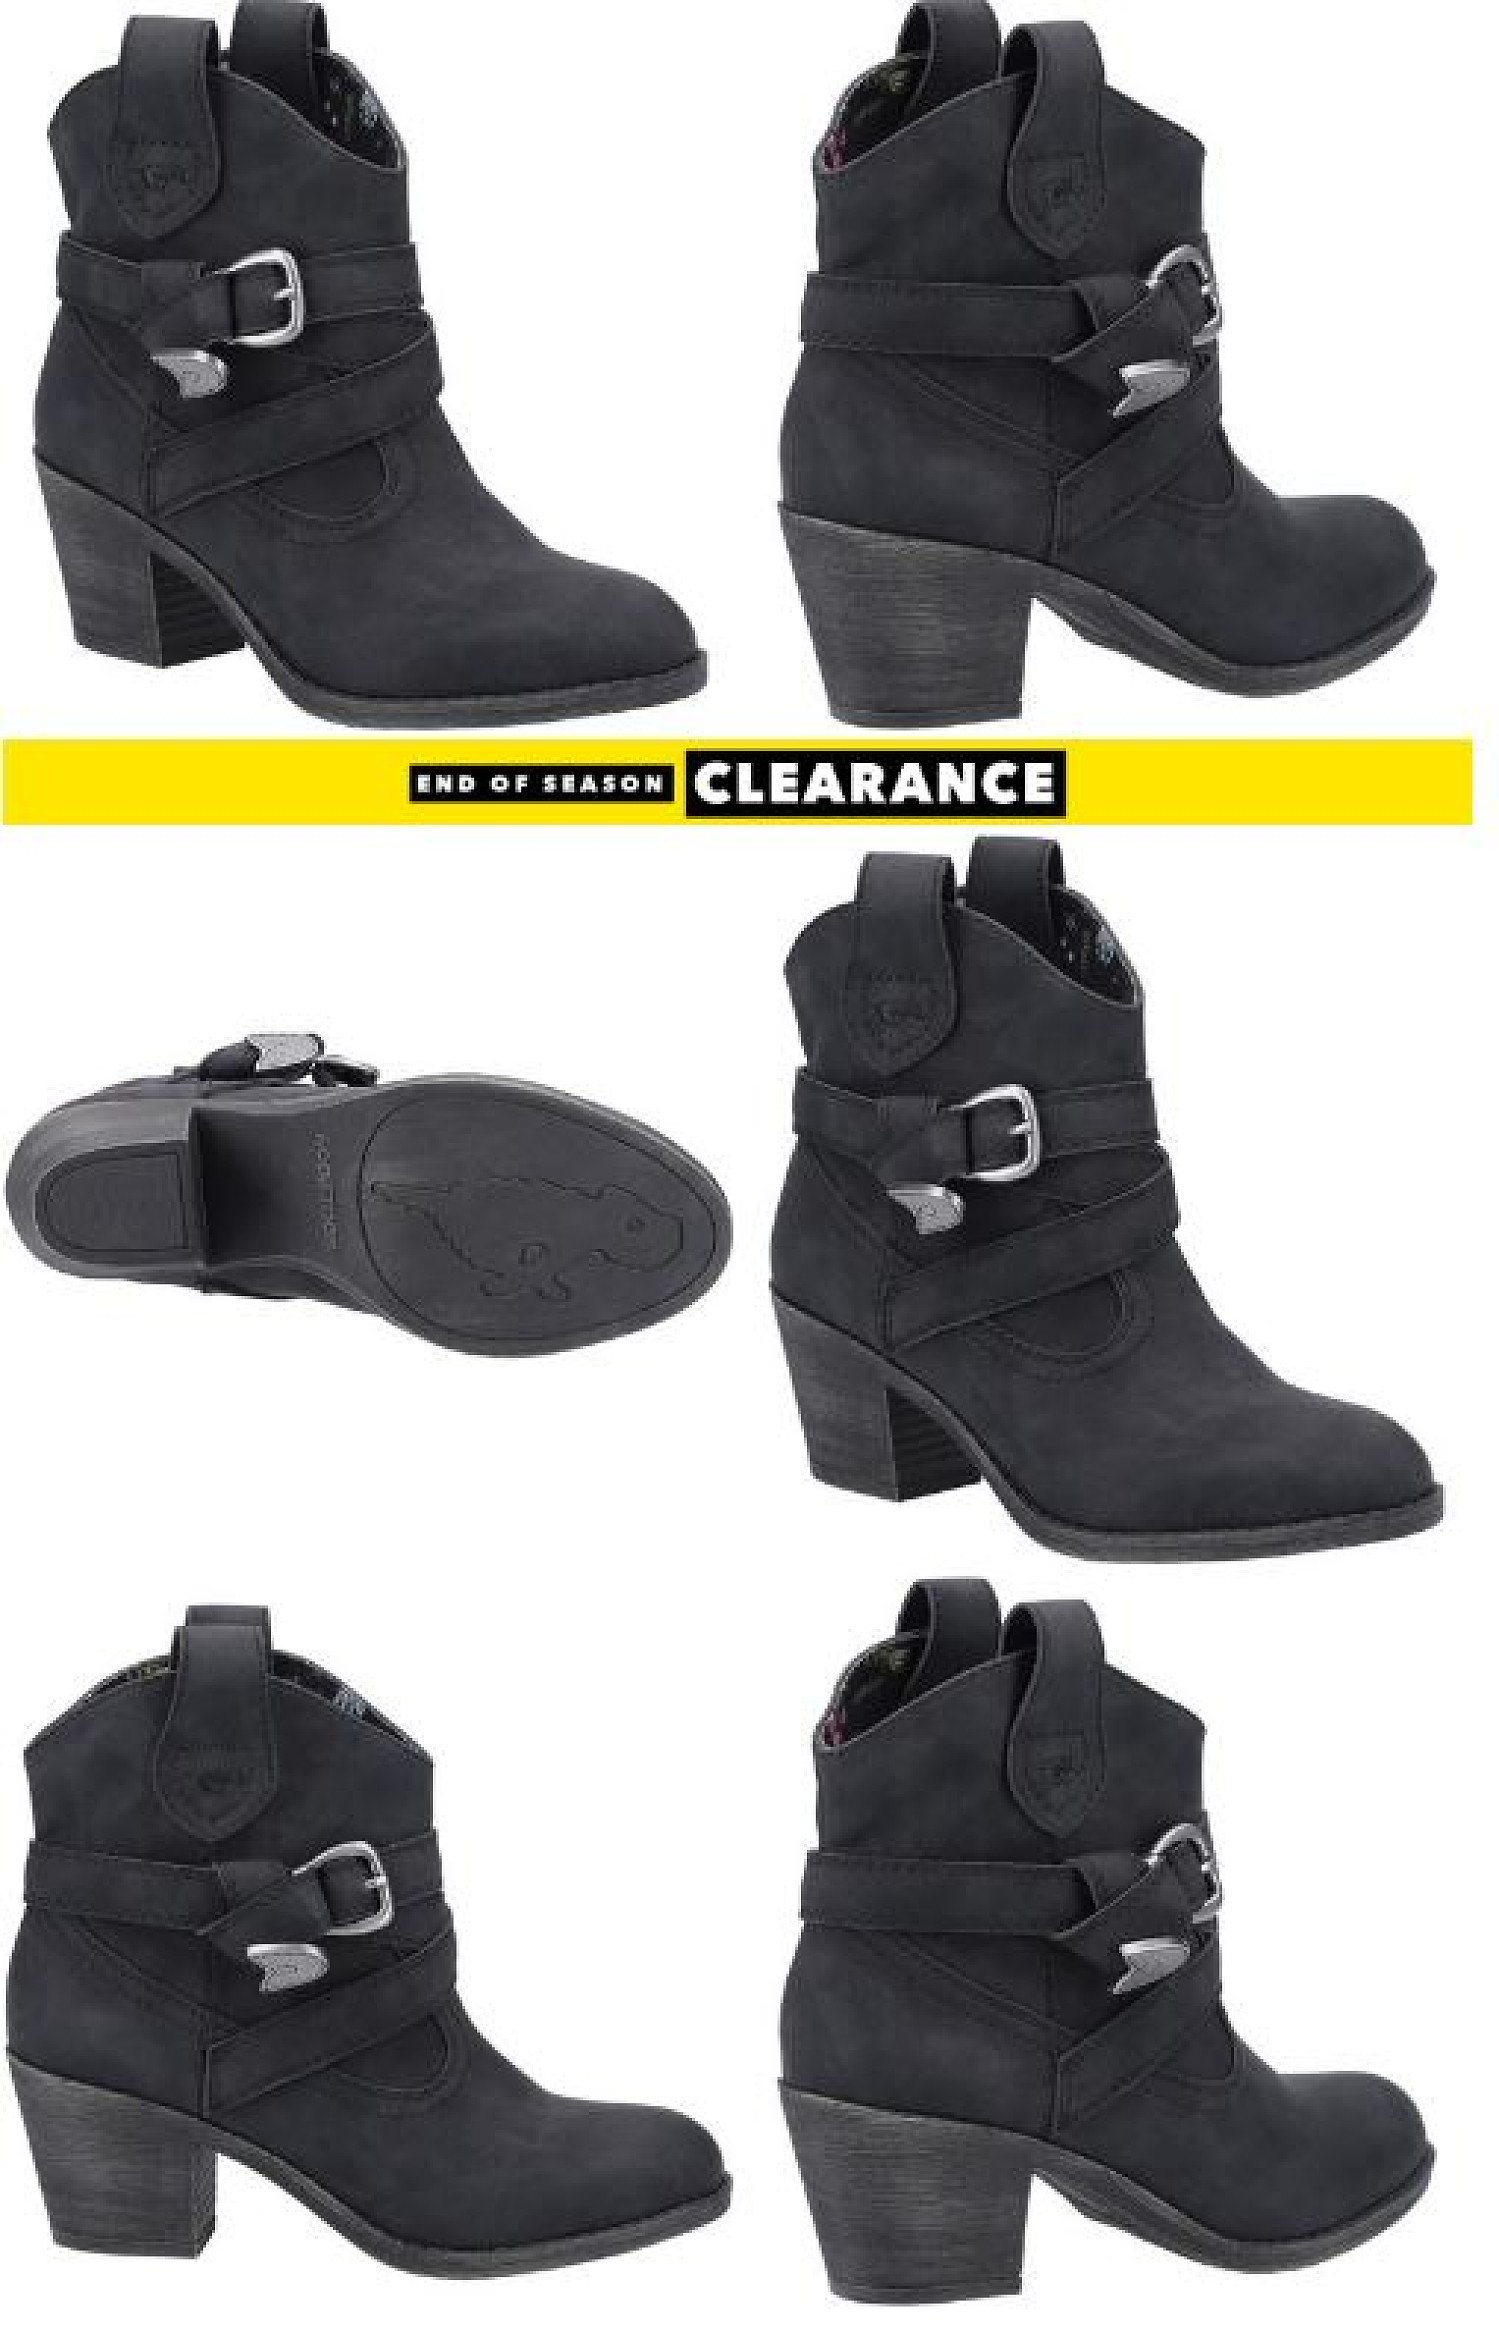 SAVE £35.00 - Rocket Dog Womens Satire Ankle Boot in Black!